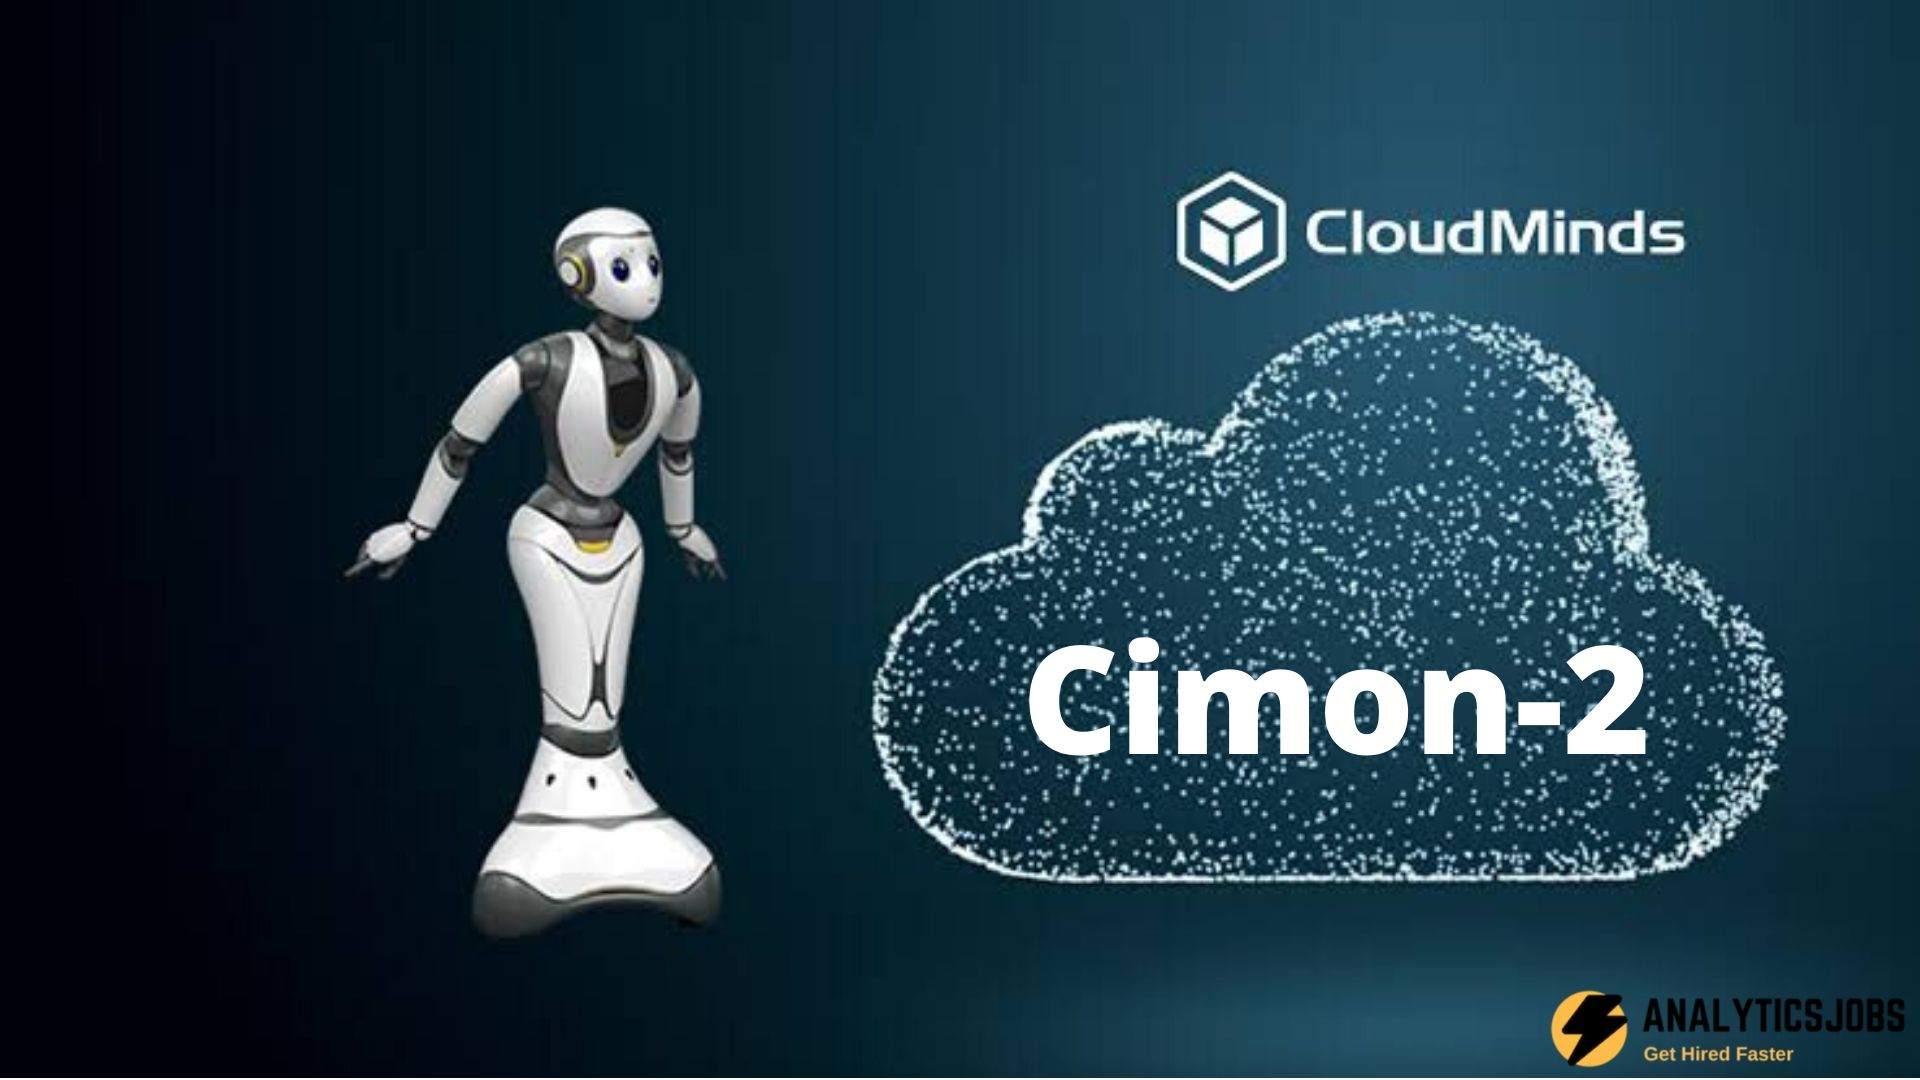 CloudMinds has developed an AI-Enabled Humanoid Robot